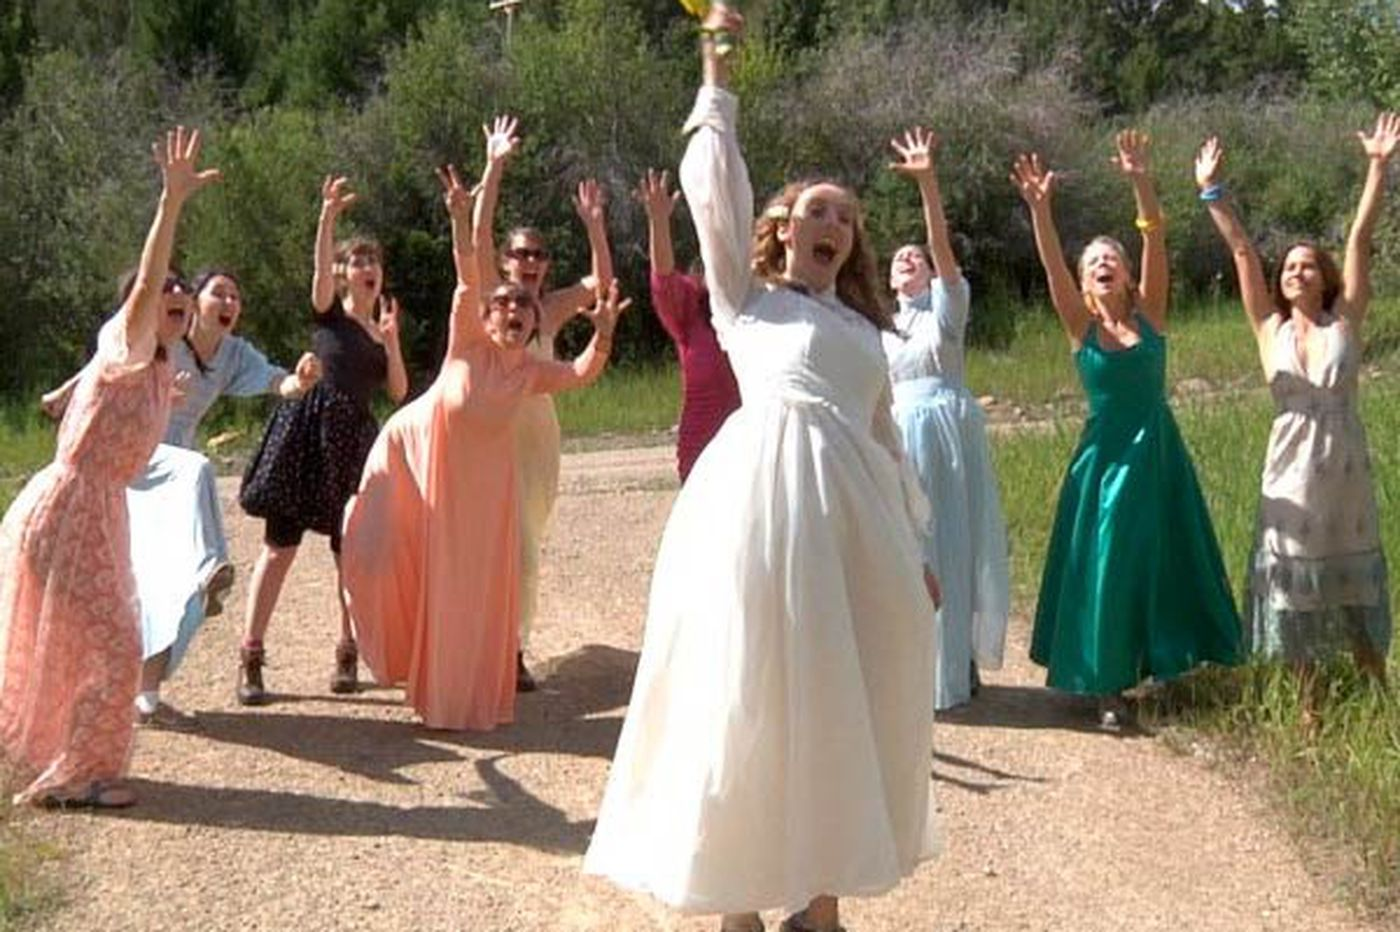 '112 Weddings' on HBO, 'Under the Dome' on CBS